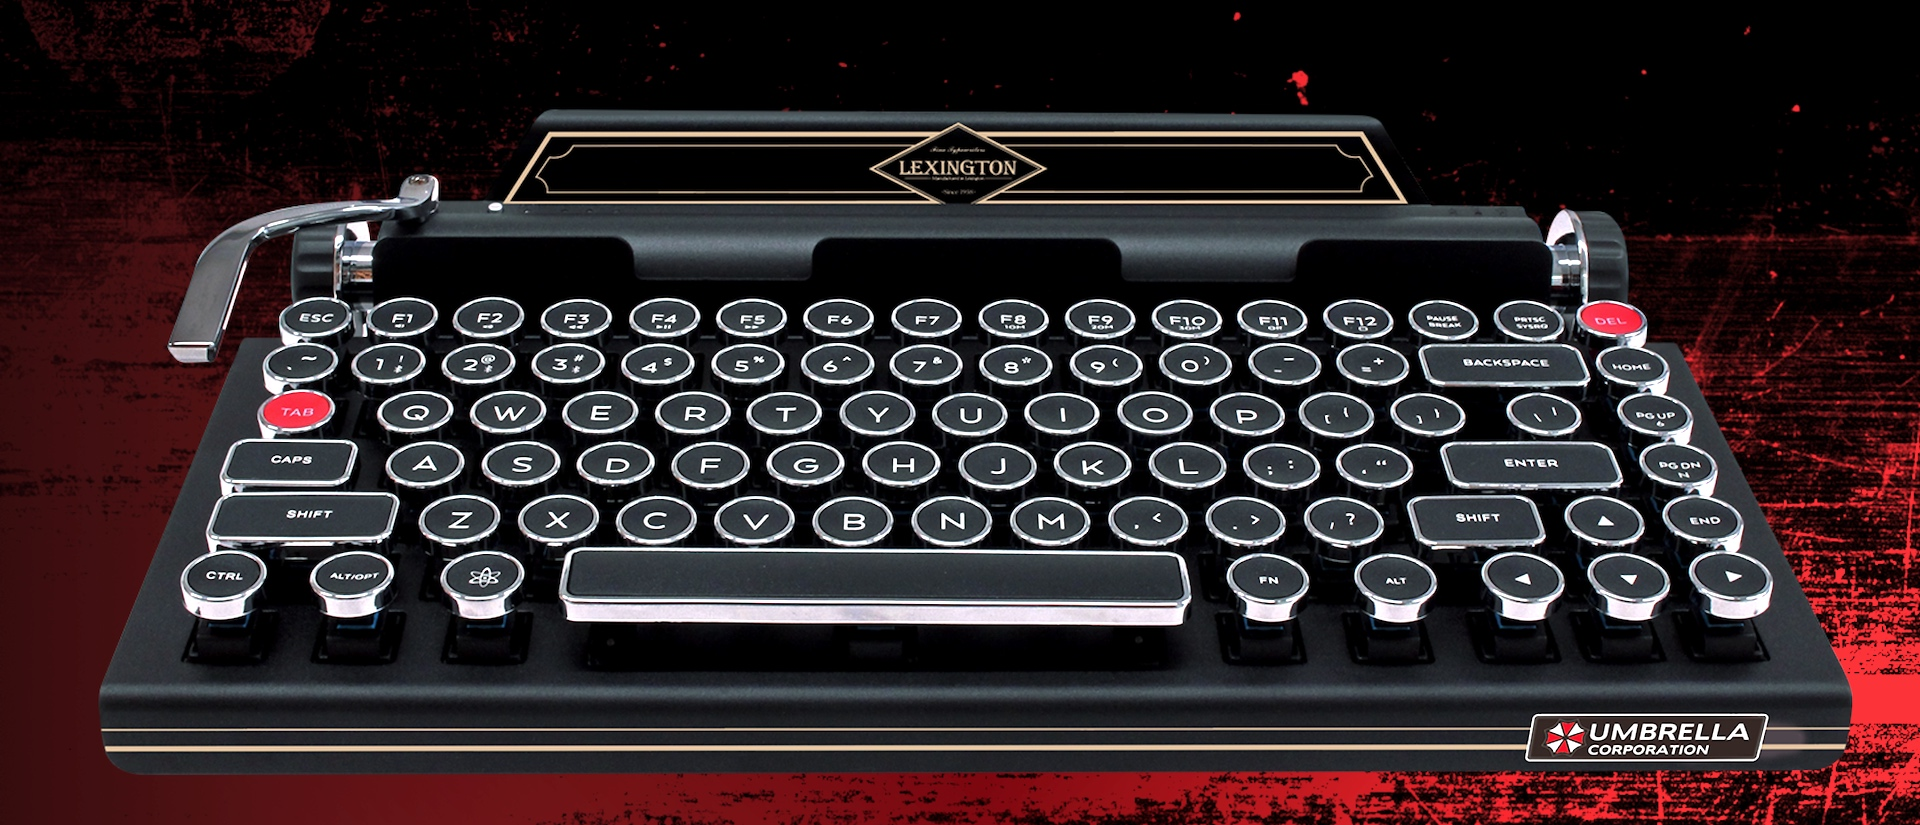 photo image Capcom made a ridiculous typewriter keyboard for 'Resident Evil 2'